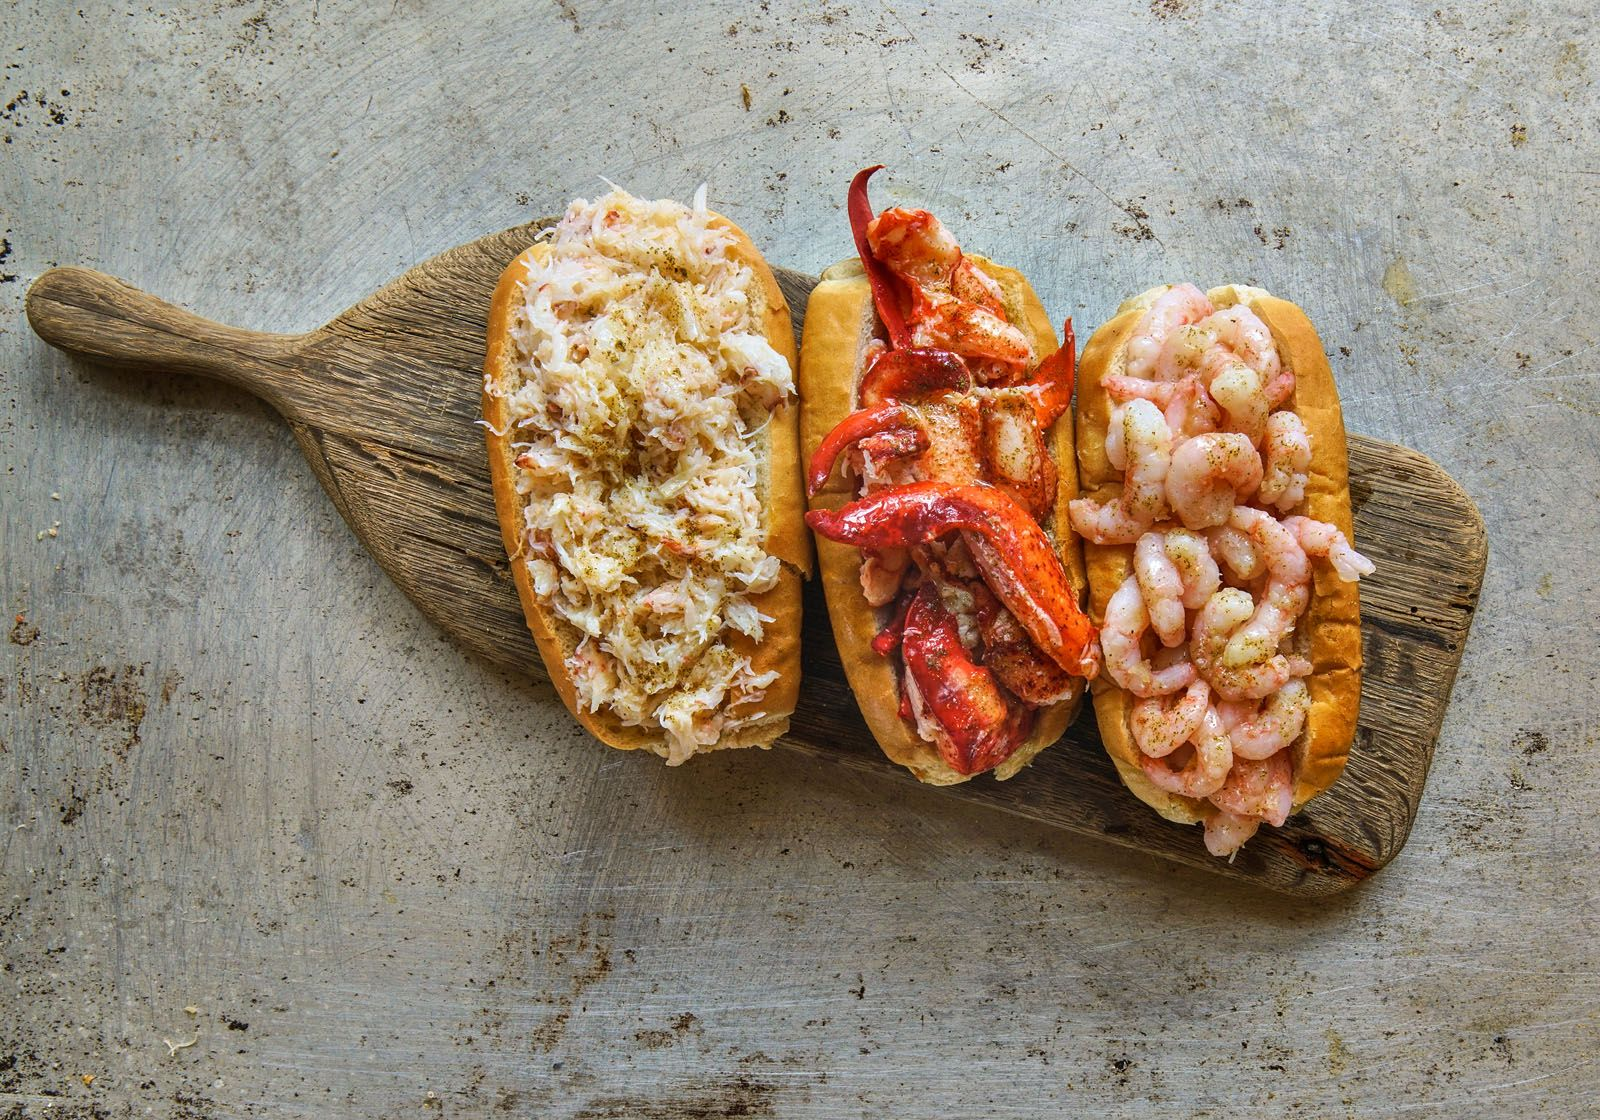 Luke's Lobster, Burger & Lobster, and More: The Best Lobster Rolls to Try in Singapore